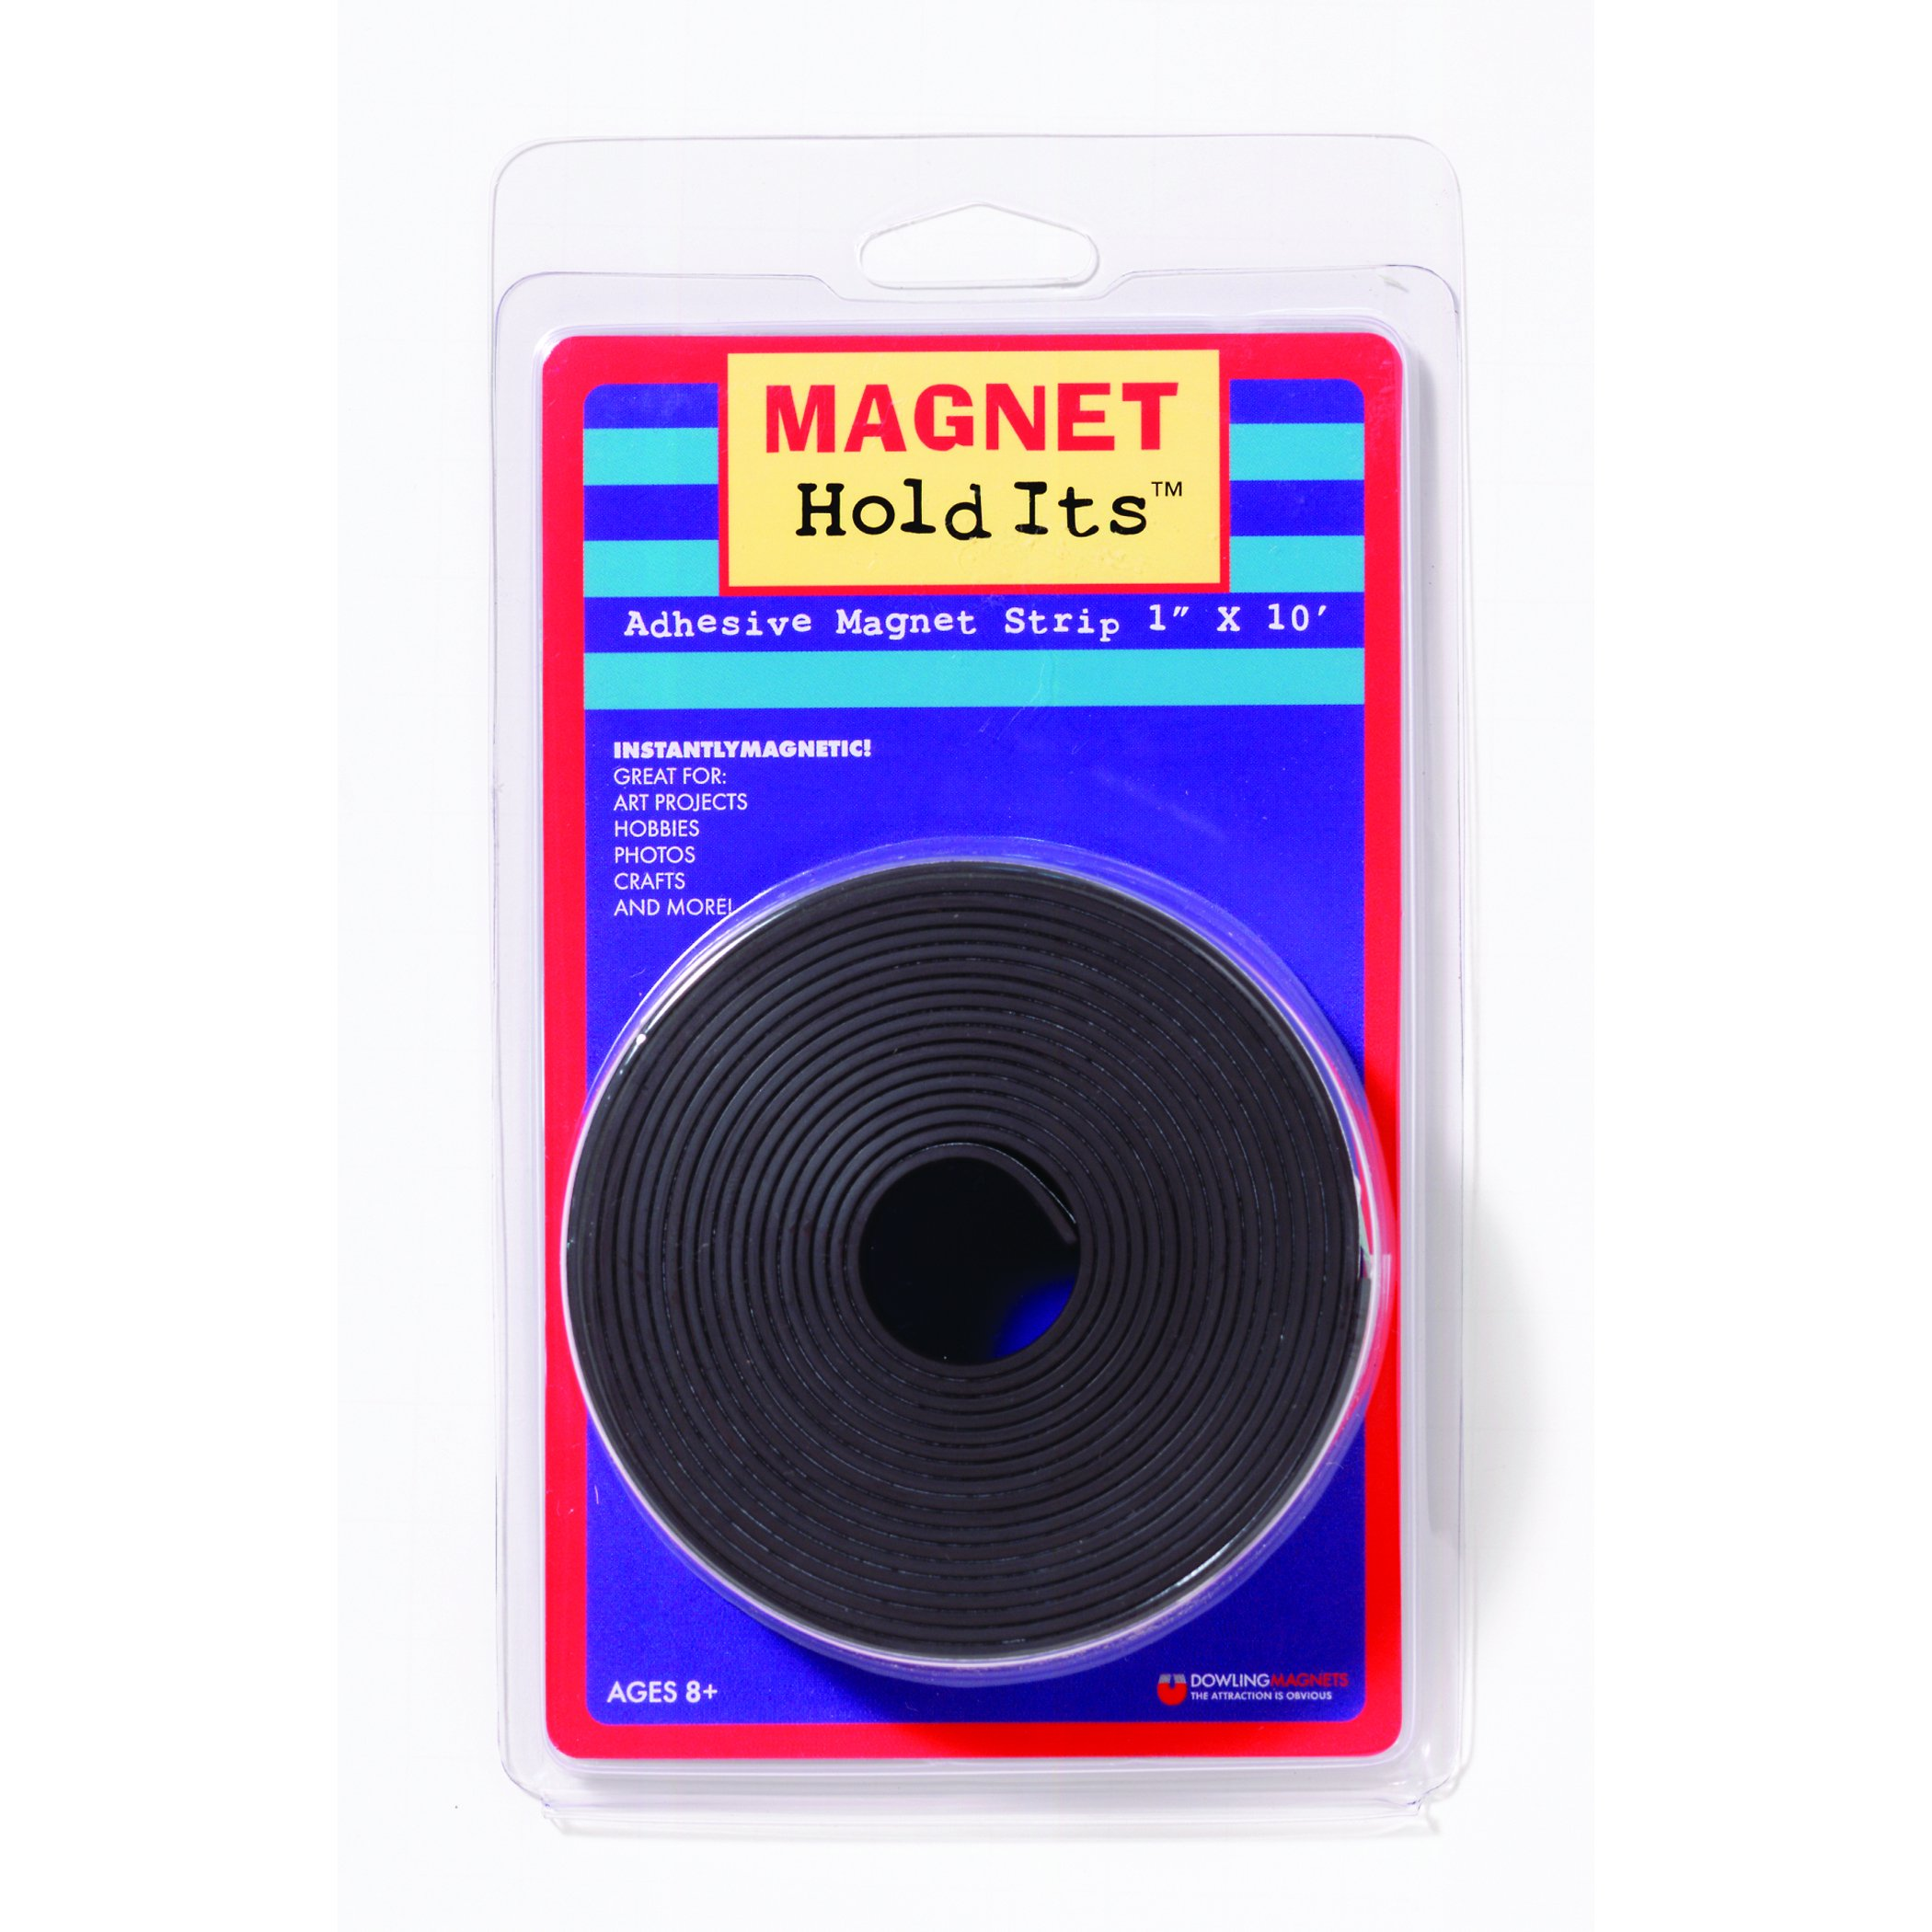 Dowling Magnets DO-735005 Roll of Magnet Strip with Adhesive, 4'' Wide, 7'' Length, 1.5'' Height